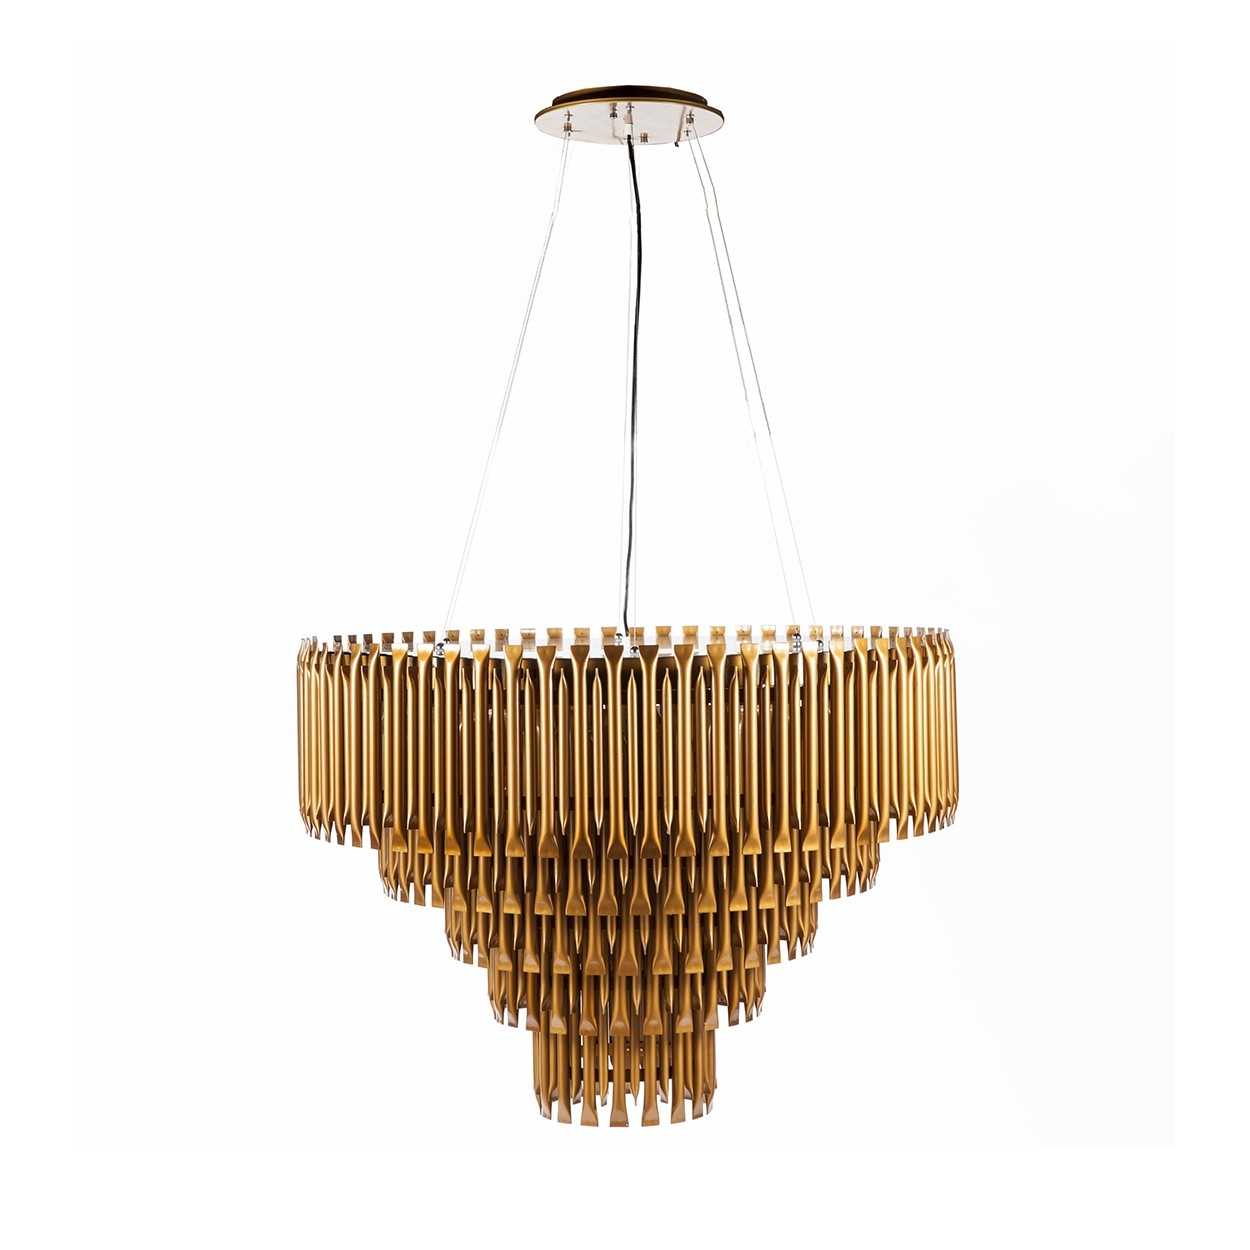 Mcgrath Mid Century Modern Led Chandelier Modernist Lighting Within Gold Modern Chandelier (Image 8 of 15)